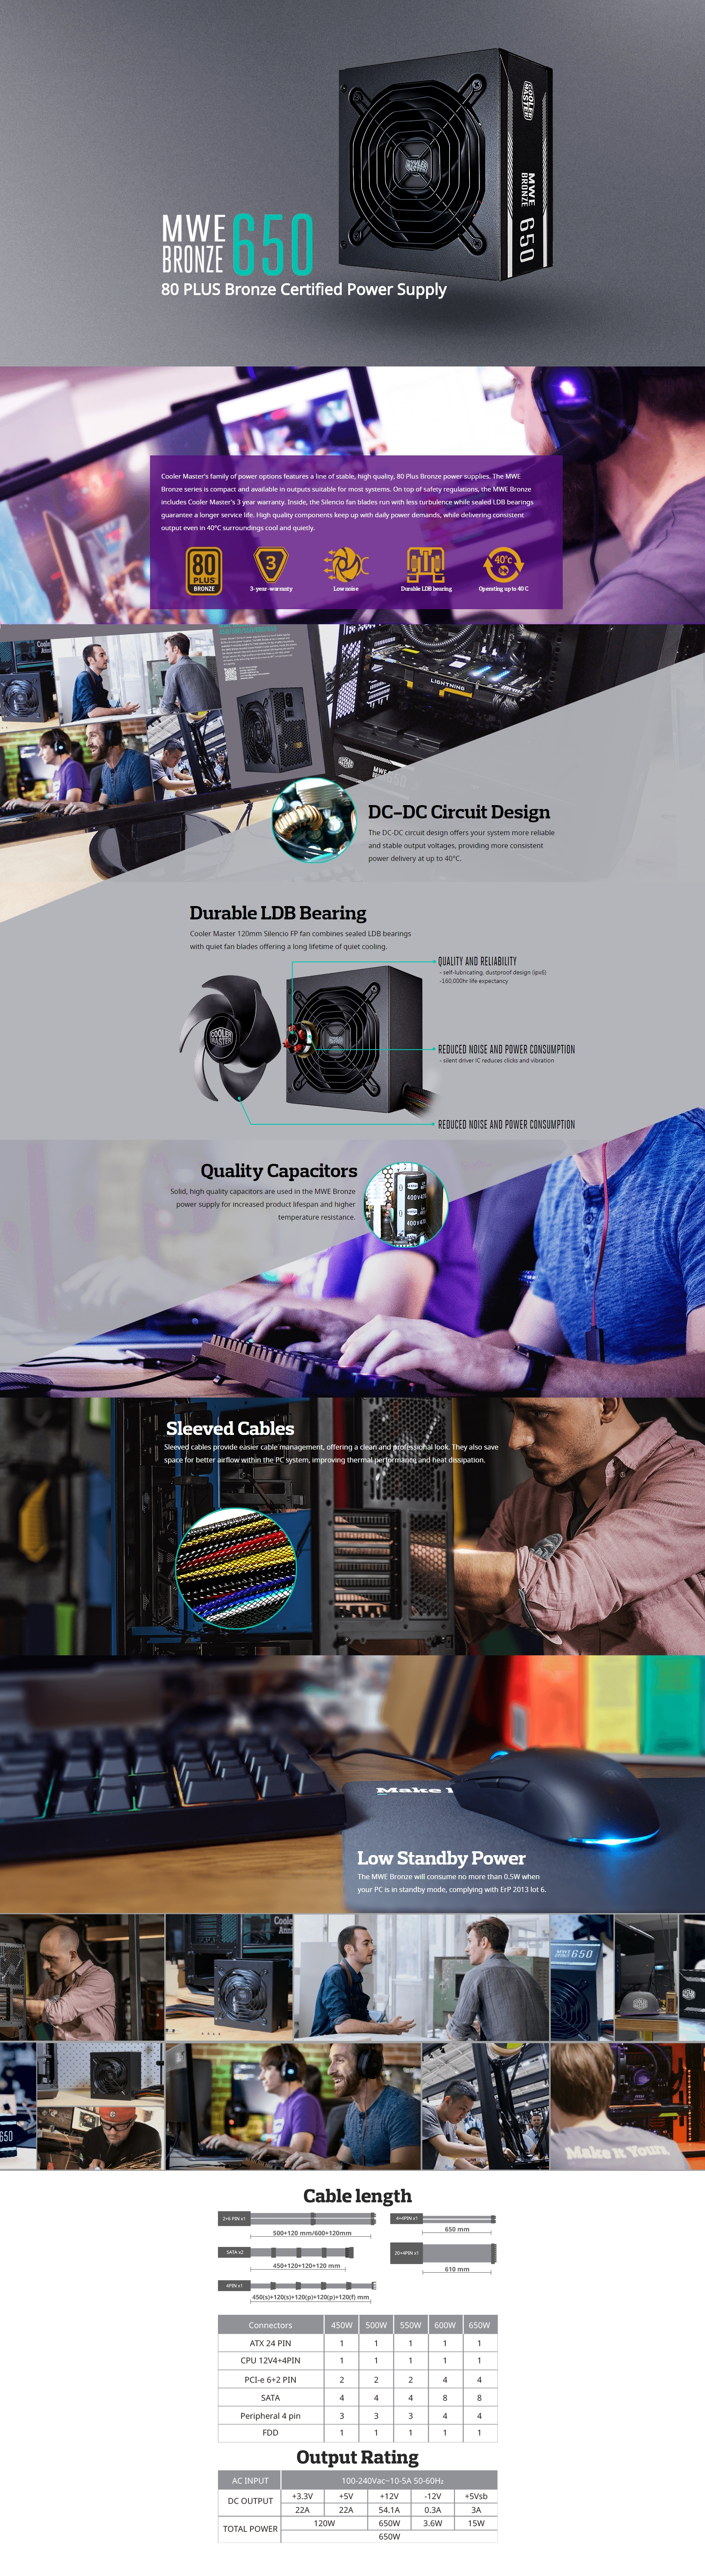 A large marketing image providing additional information about the product Cooler Master MWE 650W 80PLUS Bronze Power Supply - Additional alt info not provided